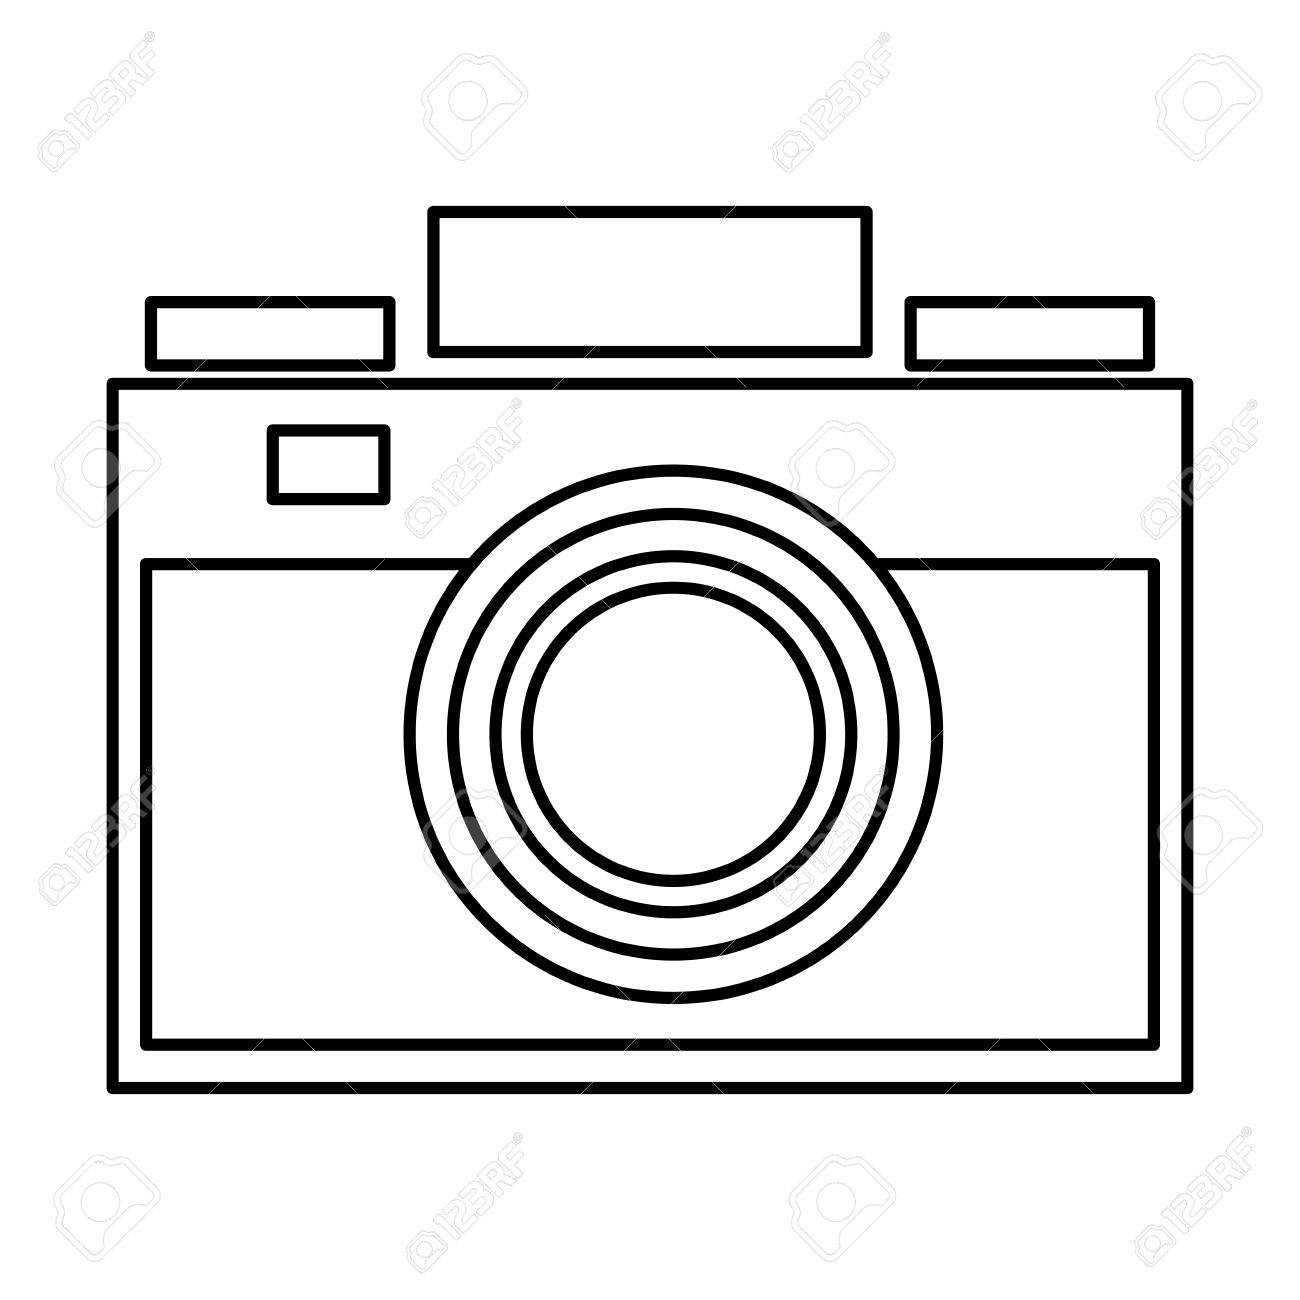 hight resolution of simple black line photographic camera vector illustration stock vector 58839955